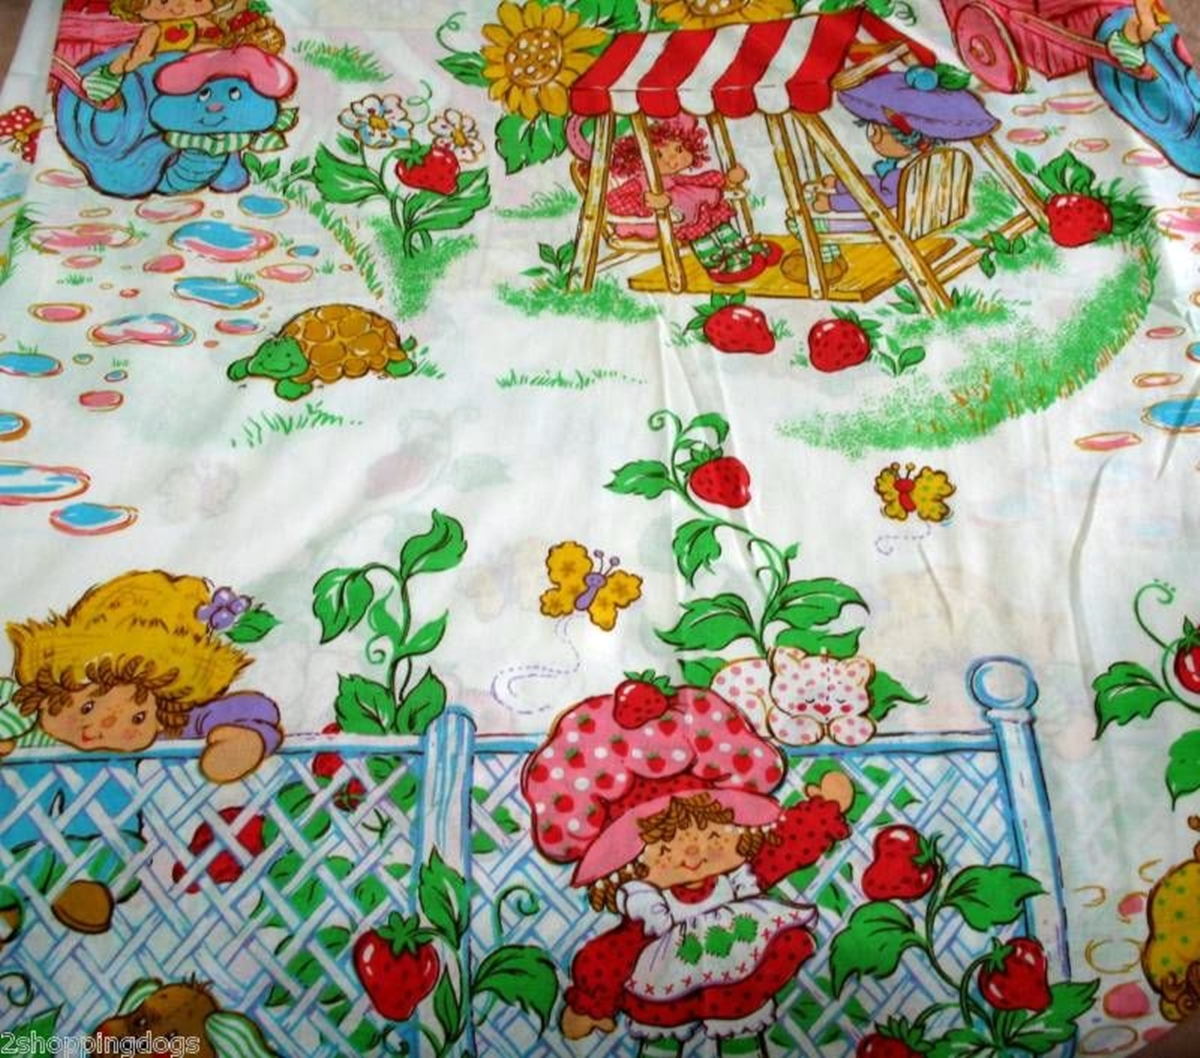 18 20 Things You Would Find In An 80s Girl's Bedroom